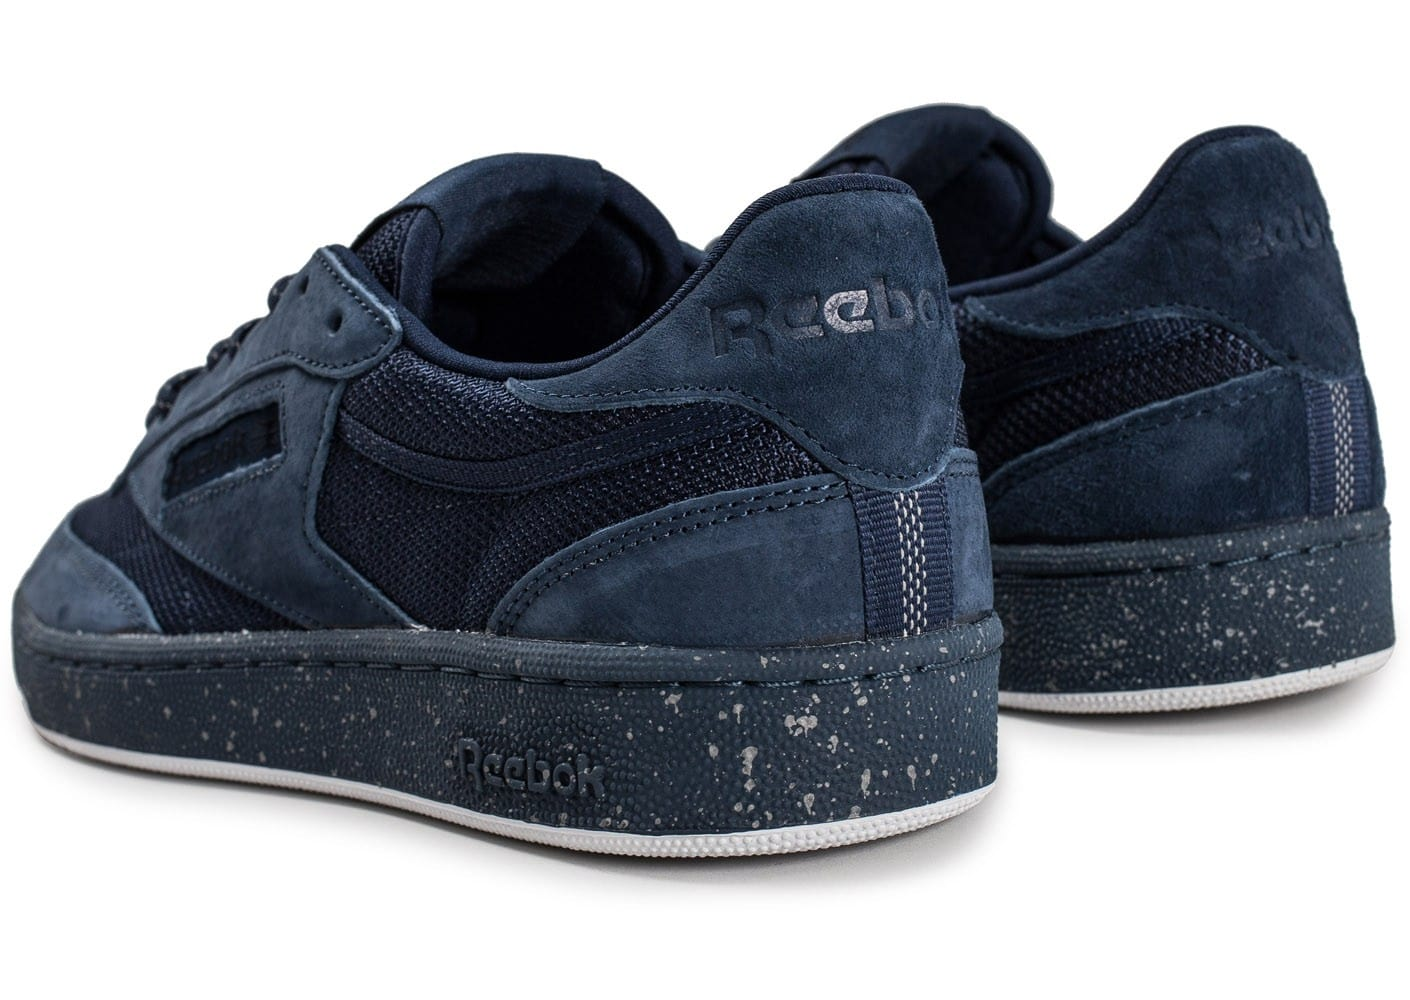 Reebok Baskets basses Club C 85 Bleu marine CdJFL